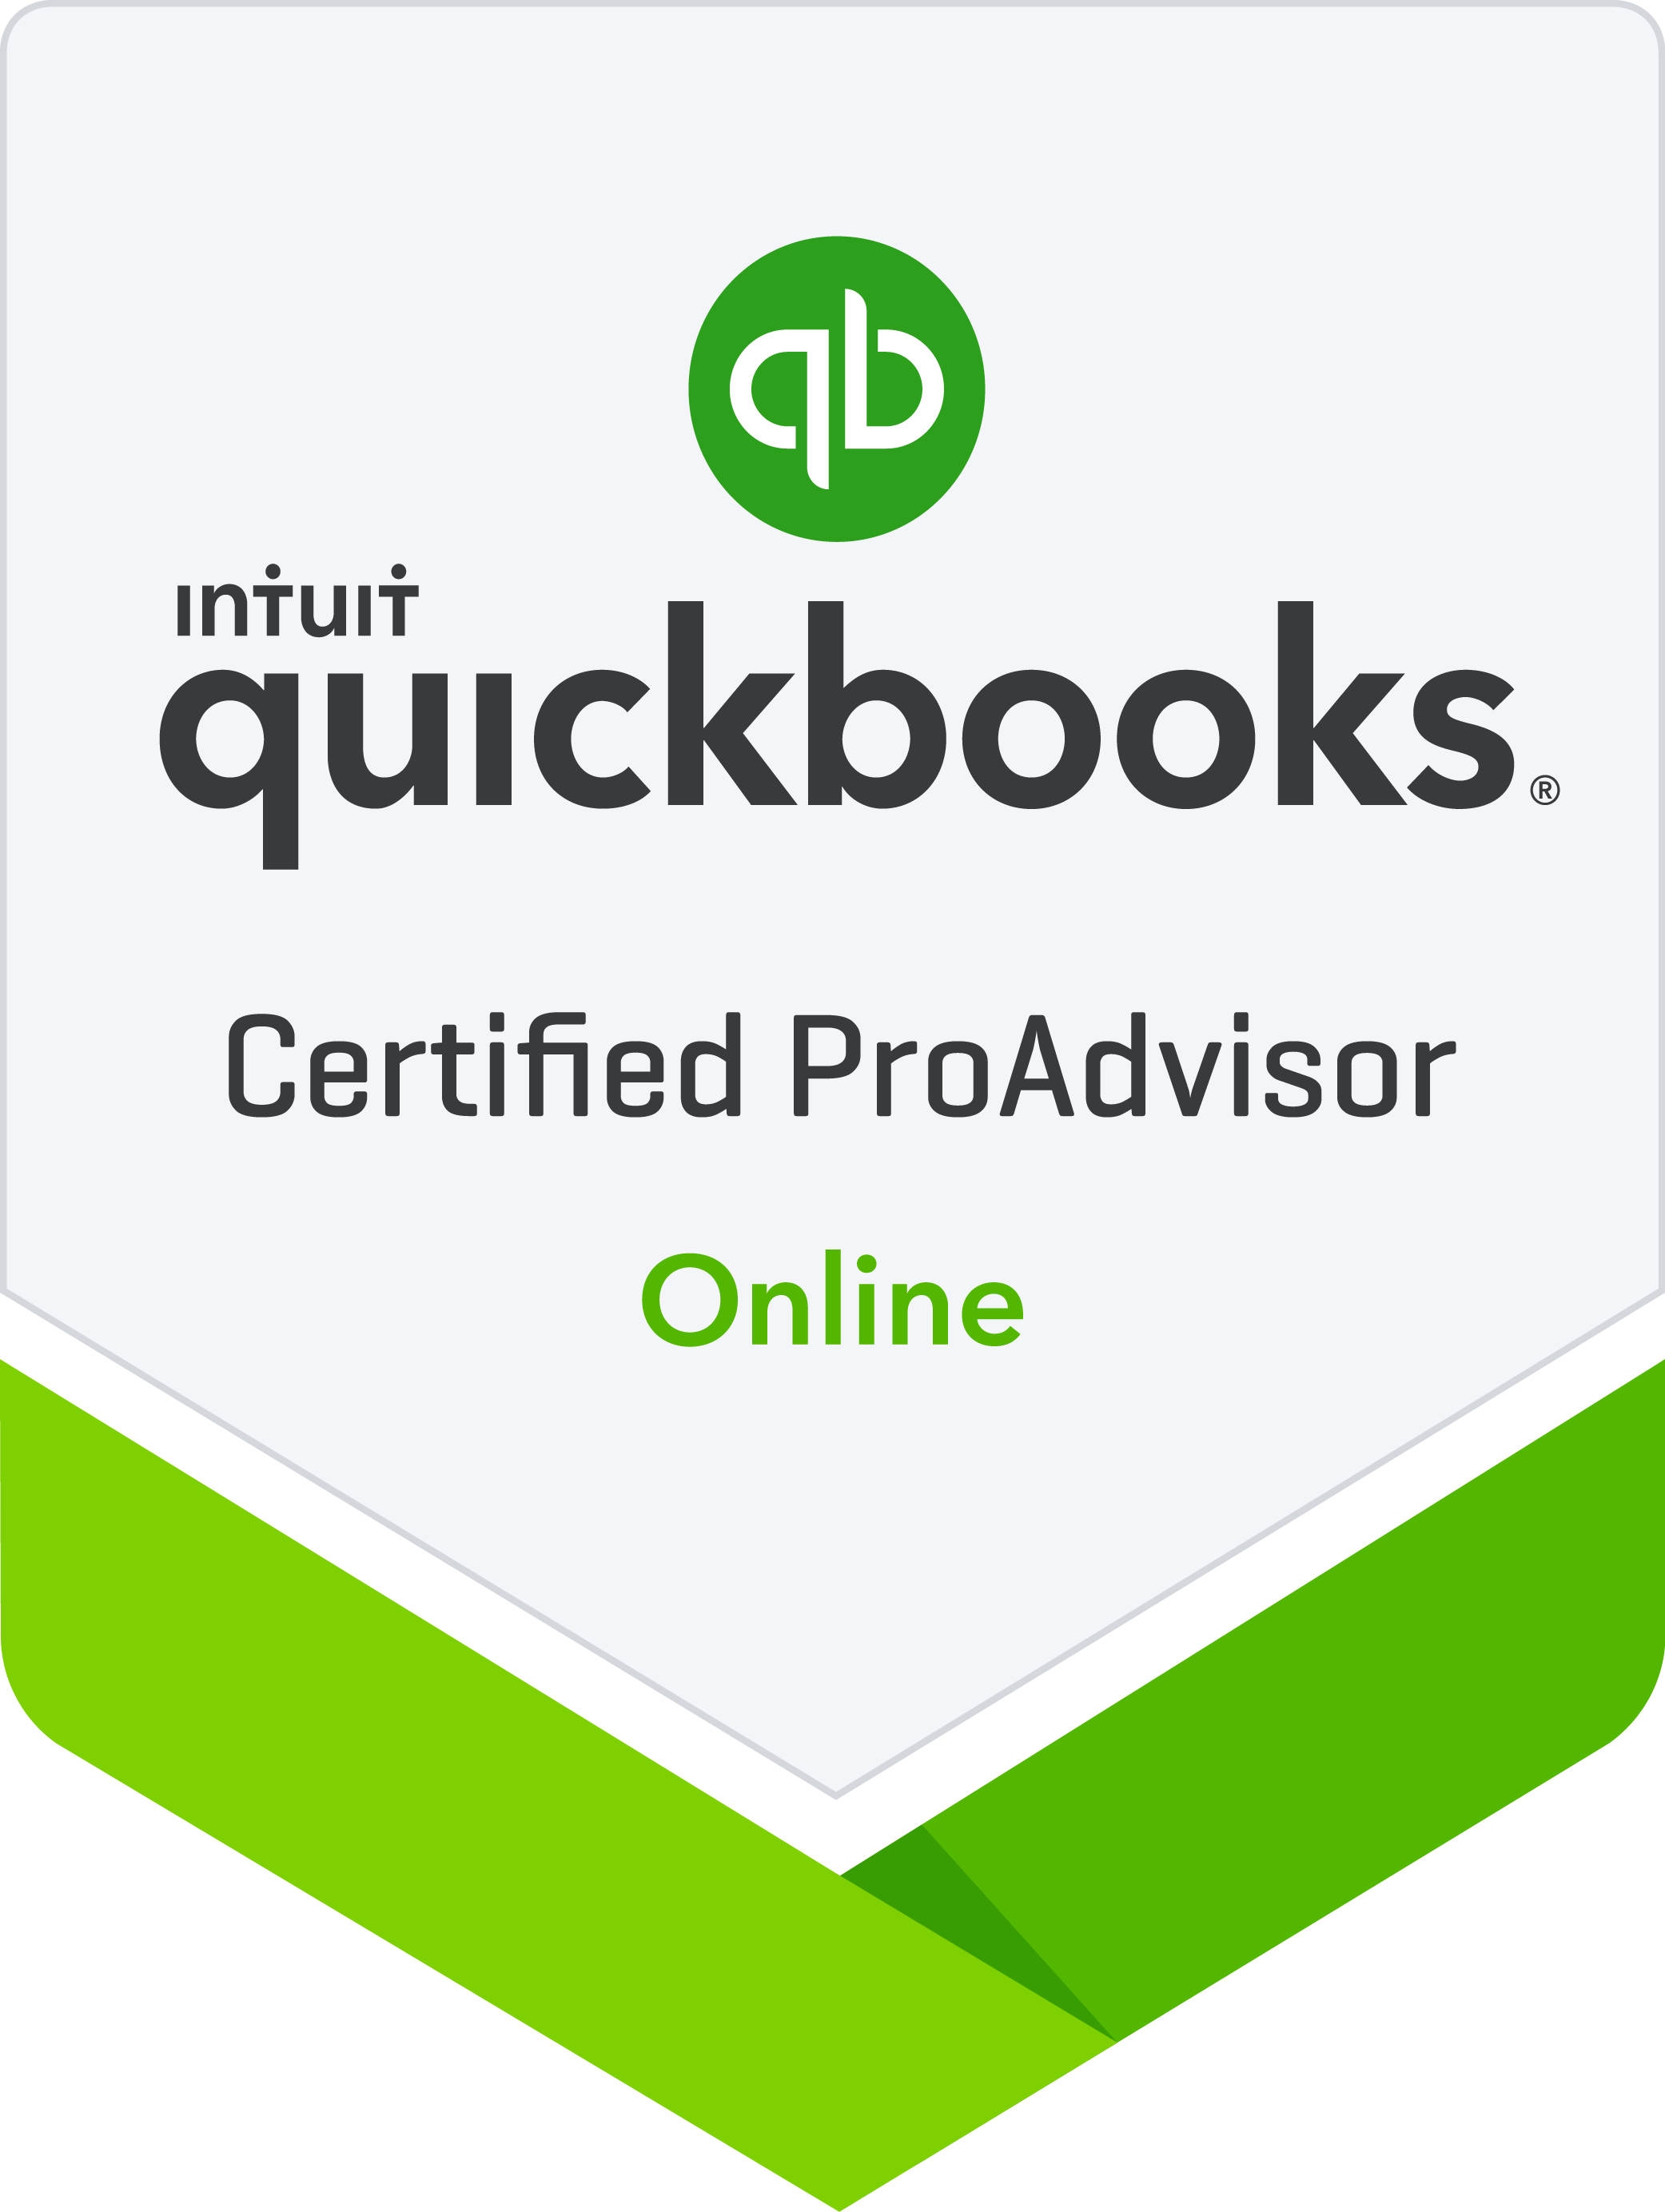 Quickbooks online - After reviewing all of the available accounting software, we felt that Quickbooks offers the best blend of affordability and value, as well as being a secure and completely online solution.Quickbooks is the world's number 1 online accounting software, with over 1.5 million subscribers. There isn also an excellent and fully featured mobile app, which can allow you to capture expenses and issue invoices on the go.We are proud to be a Quickbooks certified partner